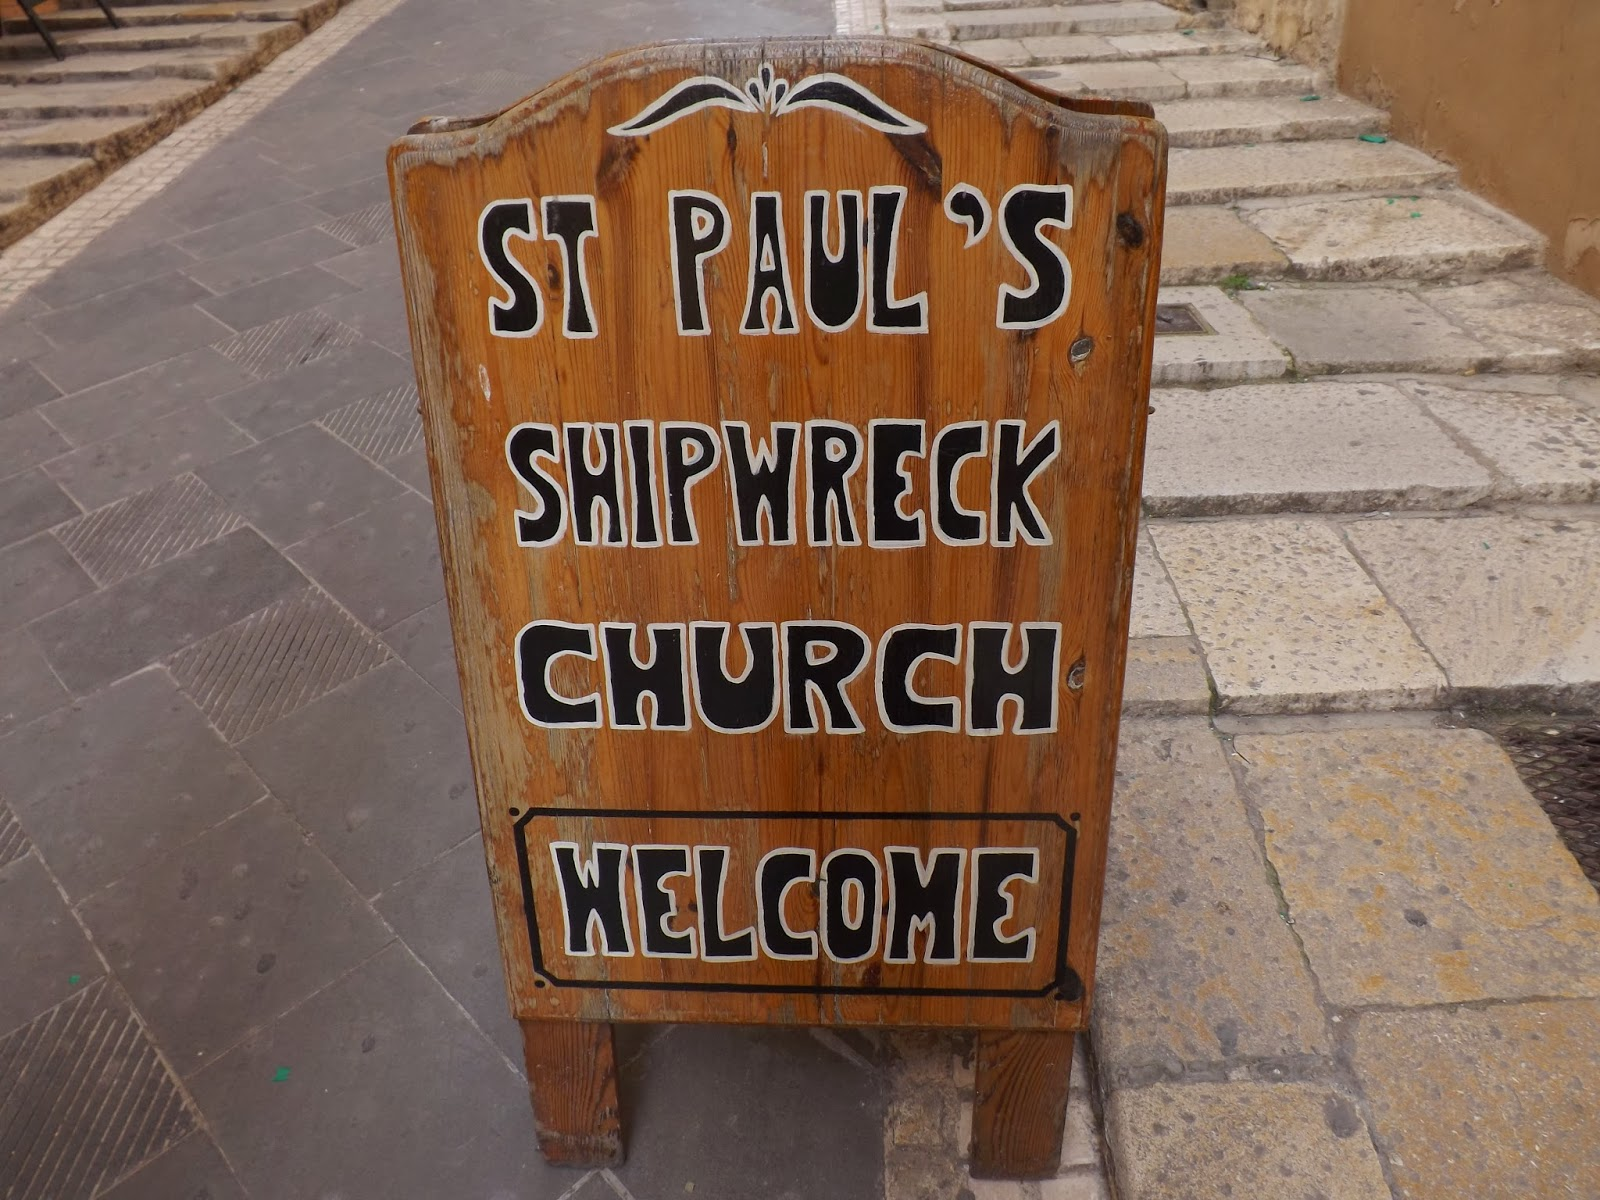 St Paul's Shipwreck Church,  Valletta